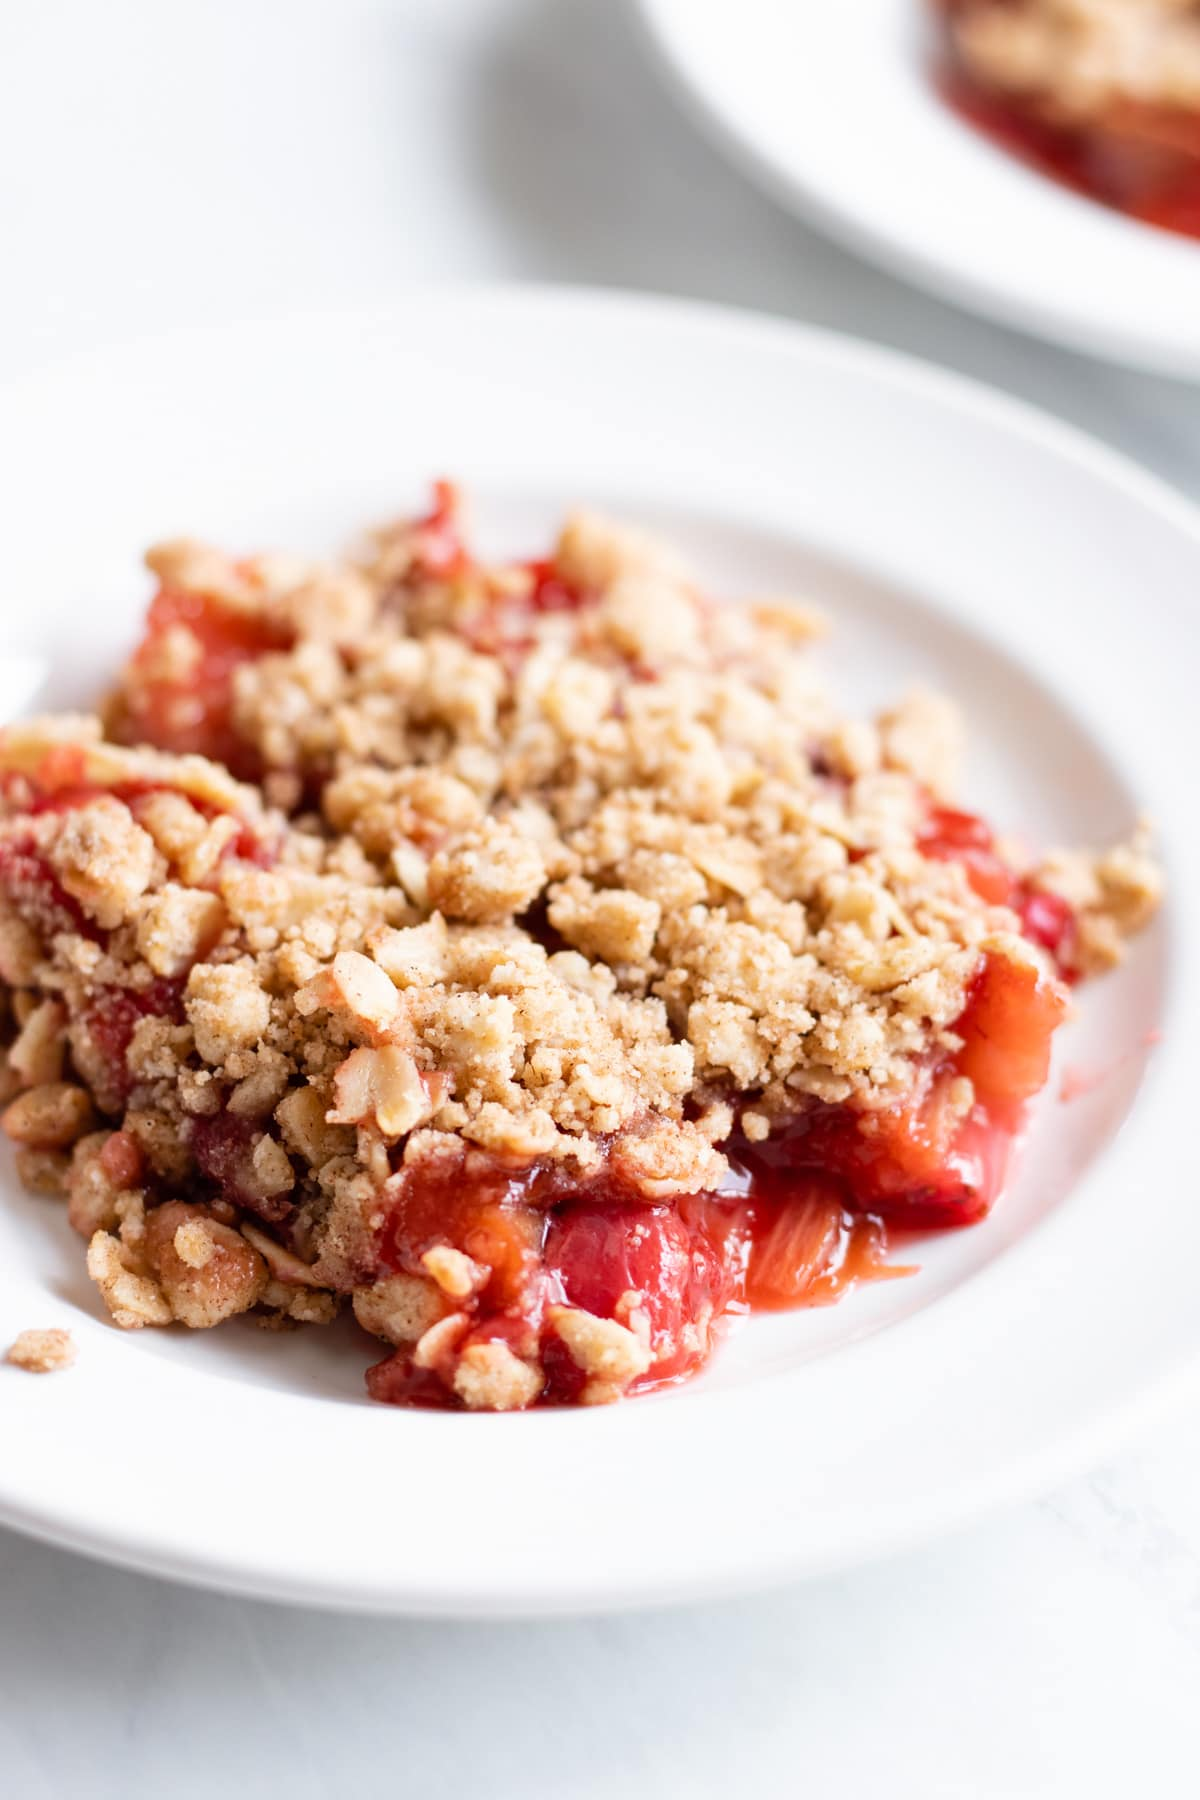 A close up of gooey baked strawberry-rhubarb topped with an oat crumble.